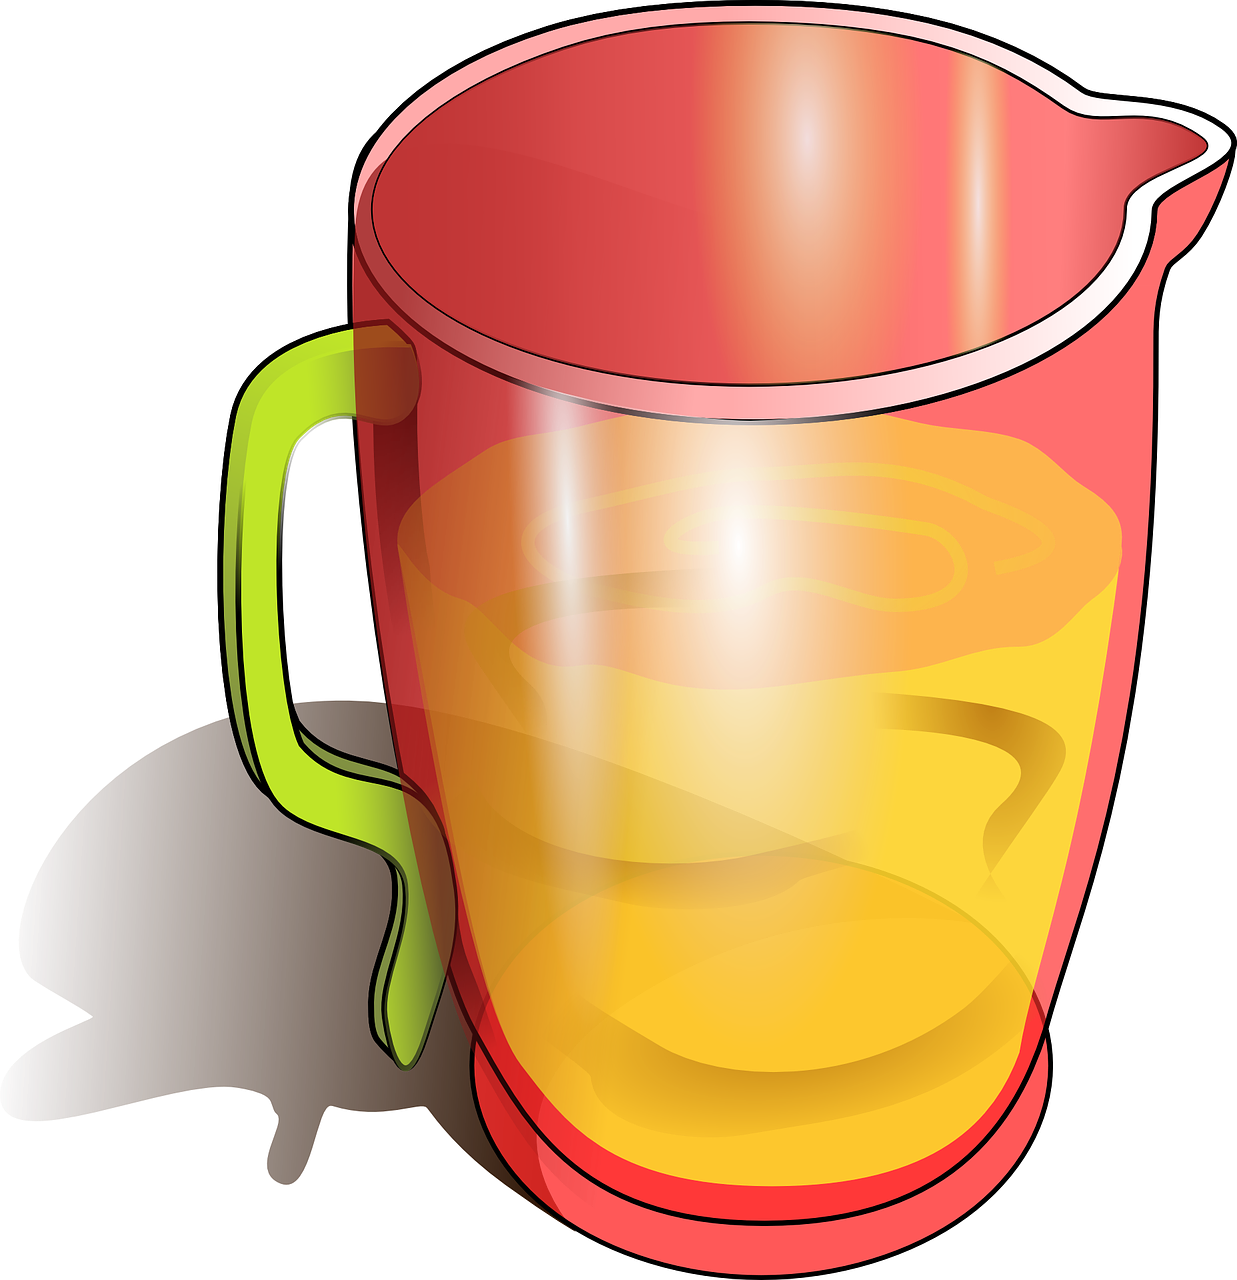 pitcher,red,juice,beverage,refreshment,pour,thirst,clear,thirsty,drink,wet,flow,free vector graphics,free pictures, free photos, free images, royalty free, free illustrations, public domain